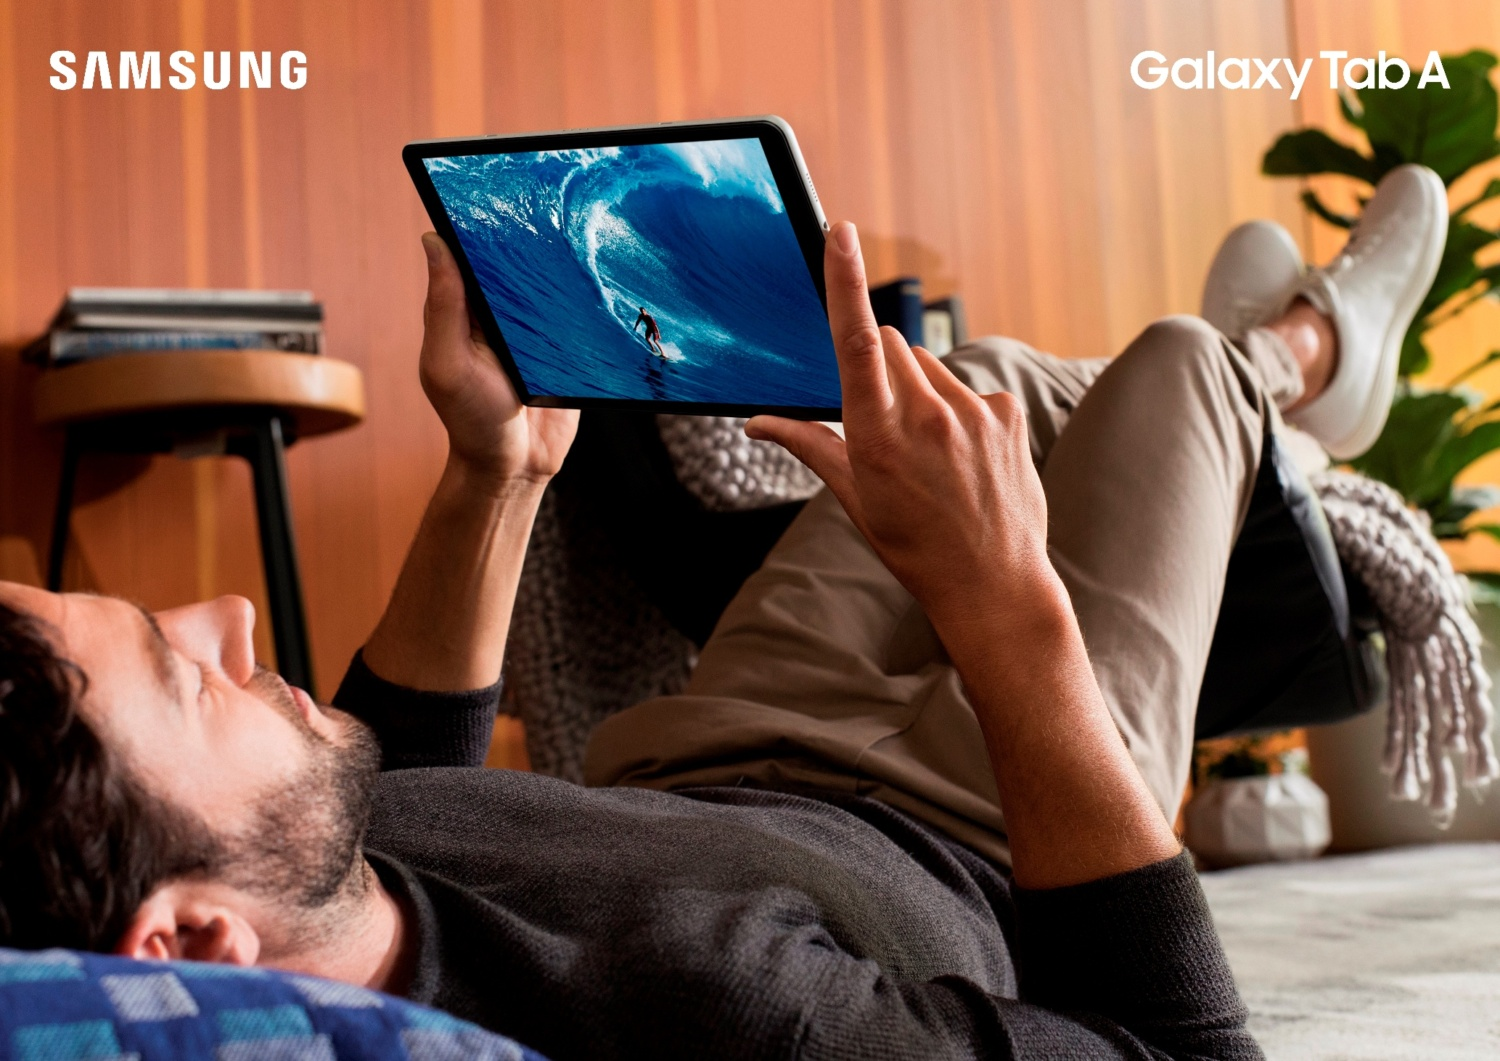 Do More, See More and Play More with New Galaxy Tab